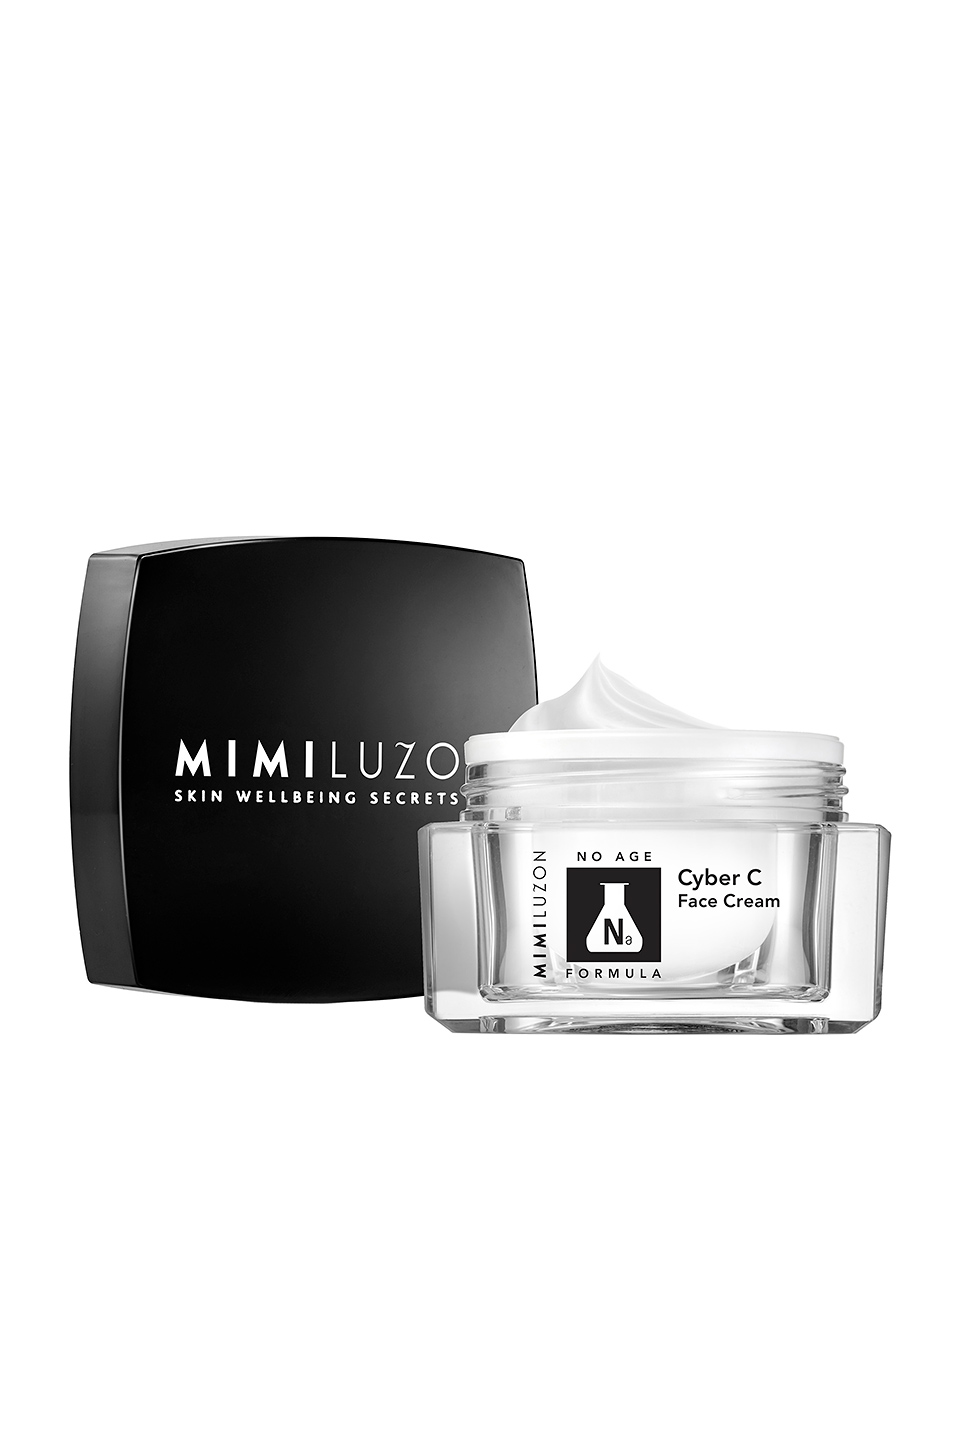 Mimi Luzon Cyber C Face Cream in